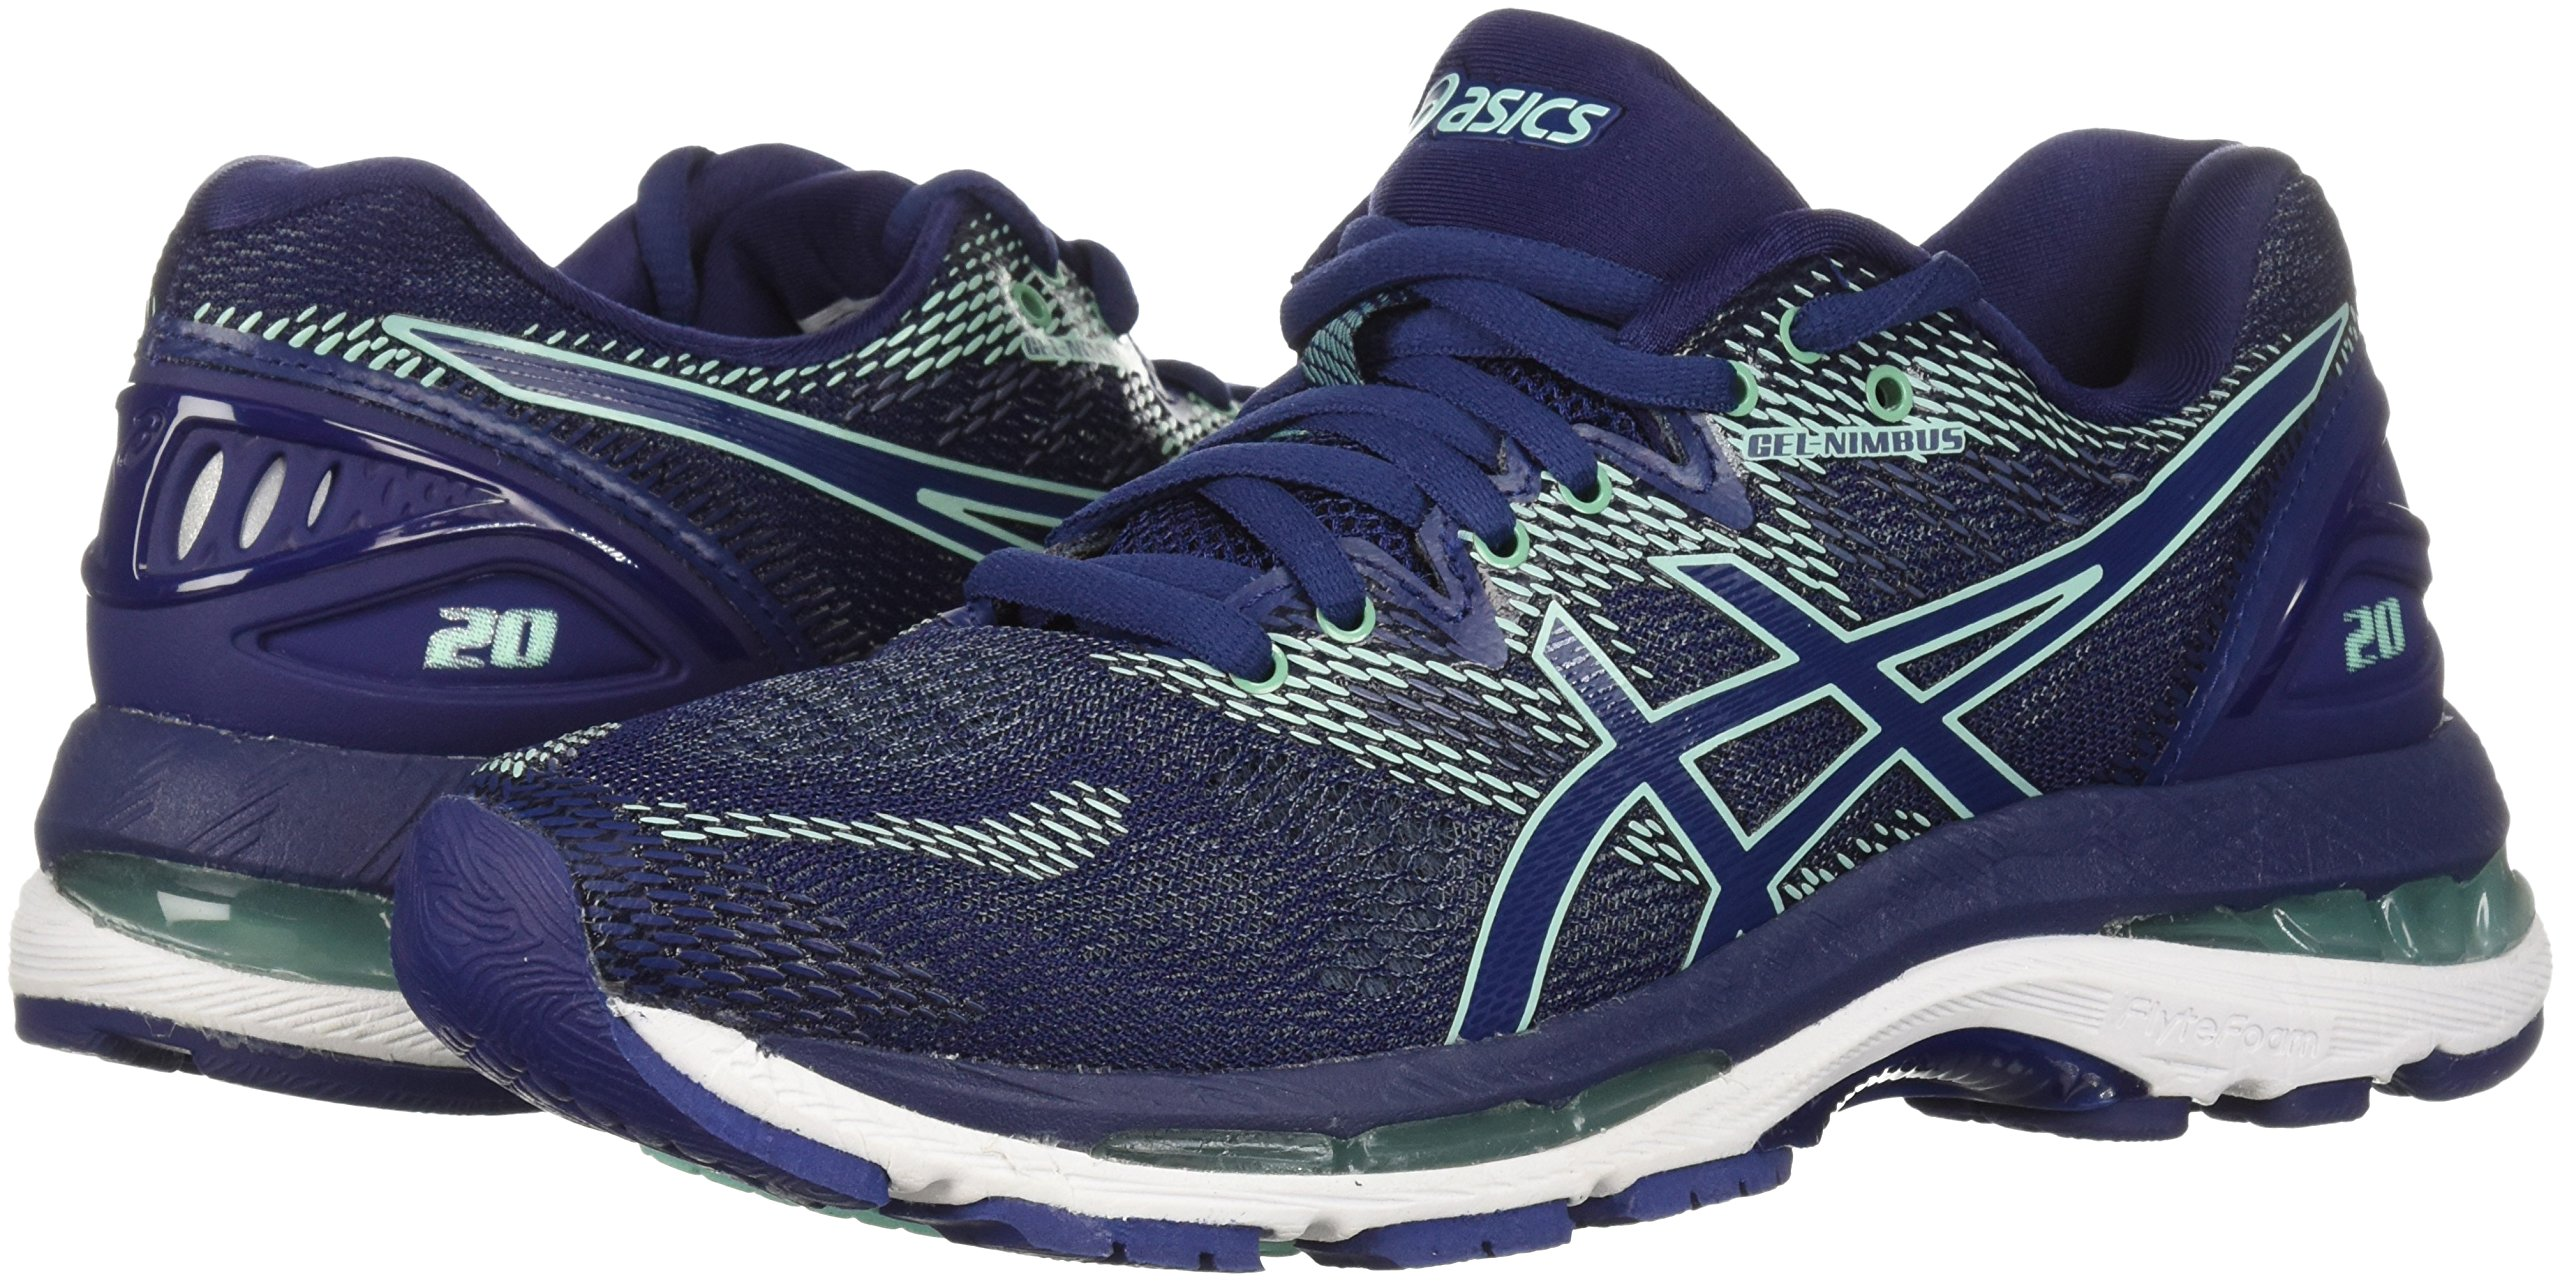 ASICS Women's Gel-Nimbus 20 Running Shoe, indigo blue/indigo blue/opal green, 12 D US by ASICS (Image #5)